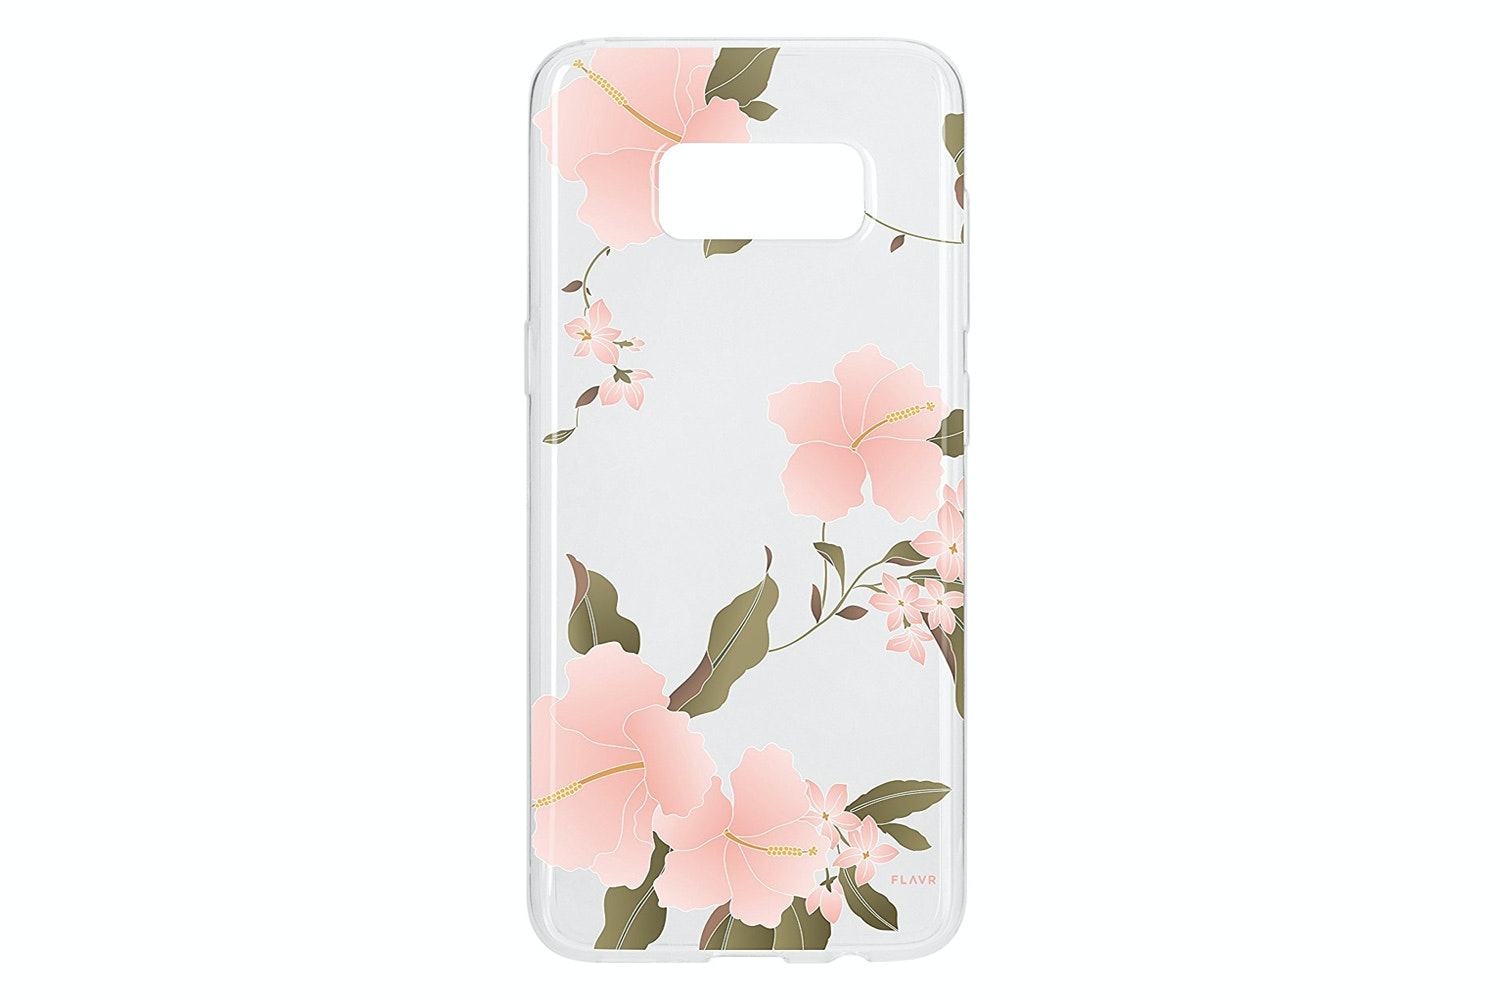 Flavr iPlate Hibiscus Samsung Galaxy S8 Case | Multi Colour